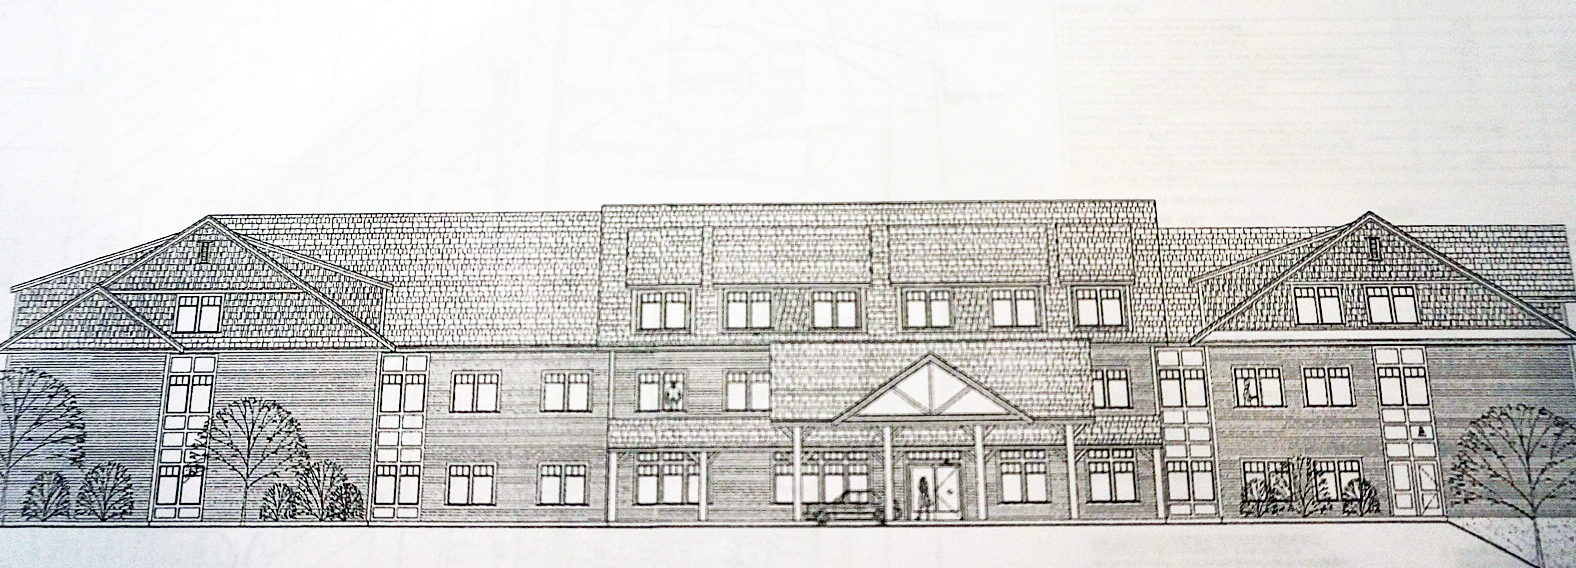 Nice Assisted Living Project Proposed Next To Nursing Home   Connecticut Post